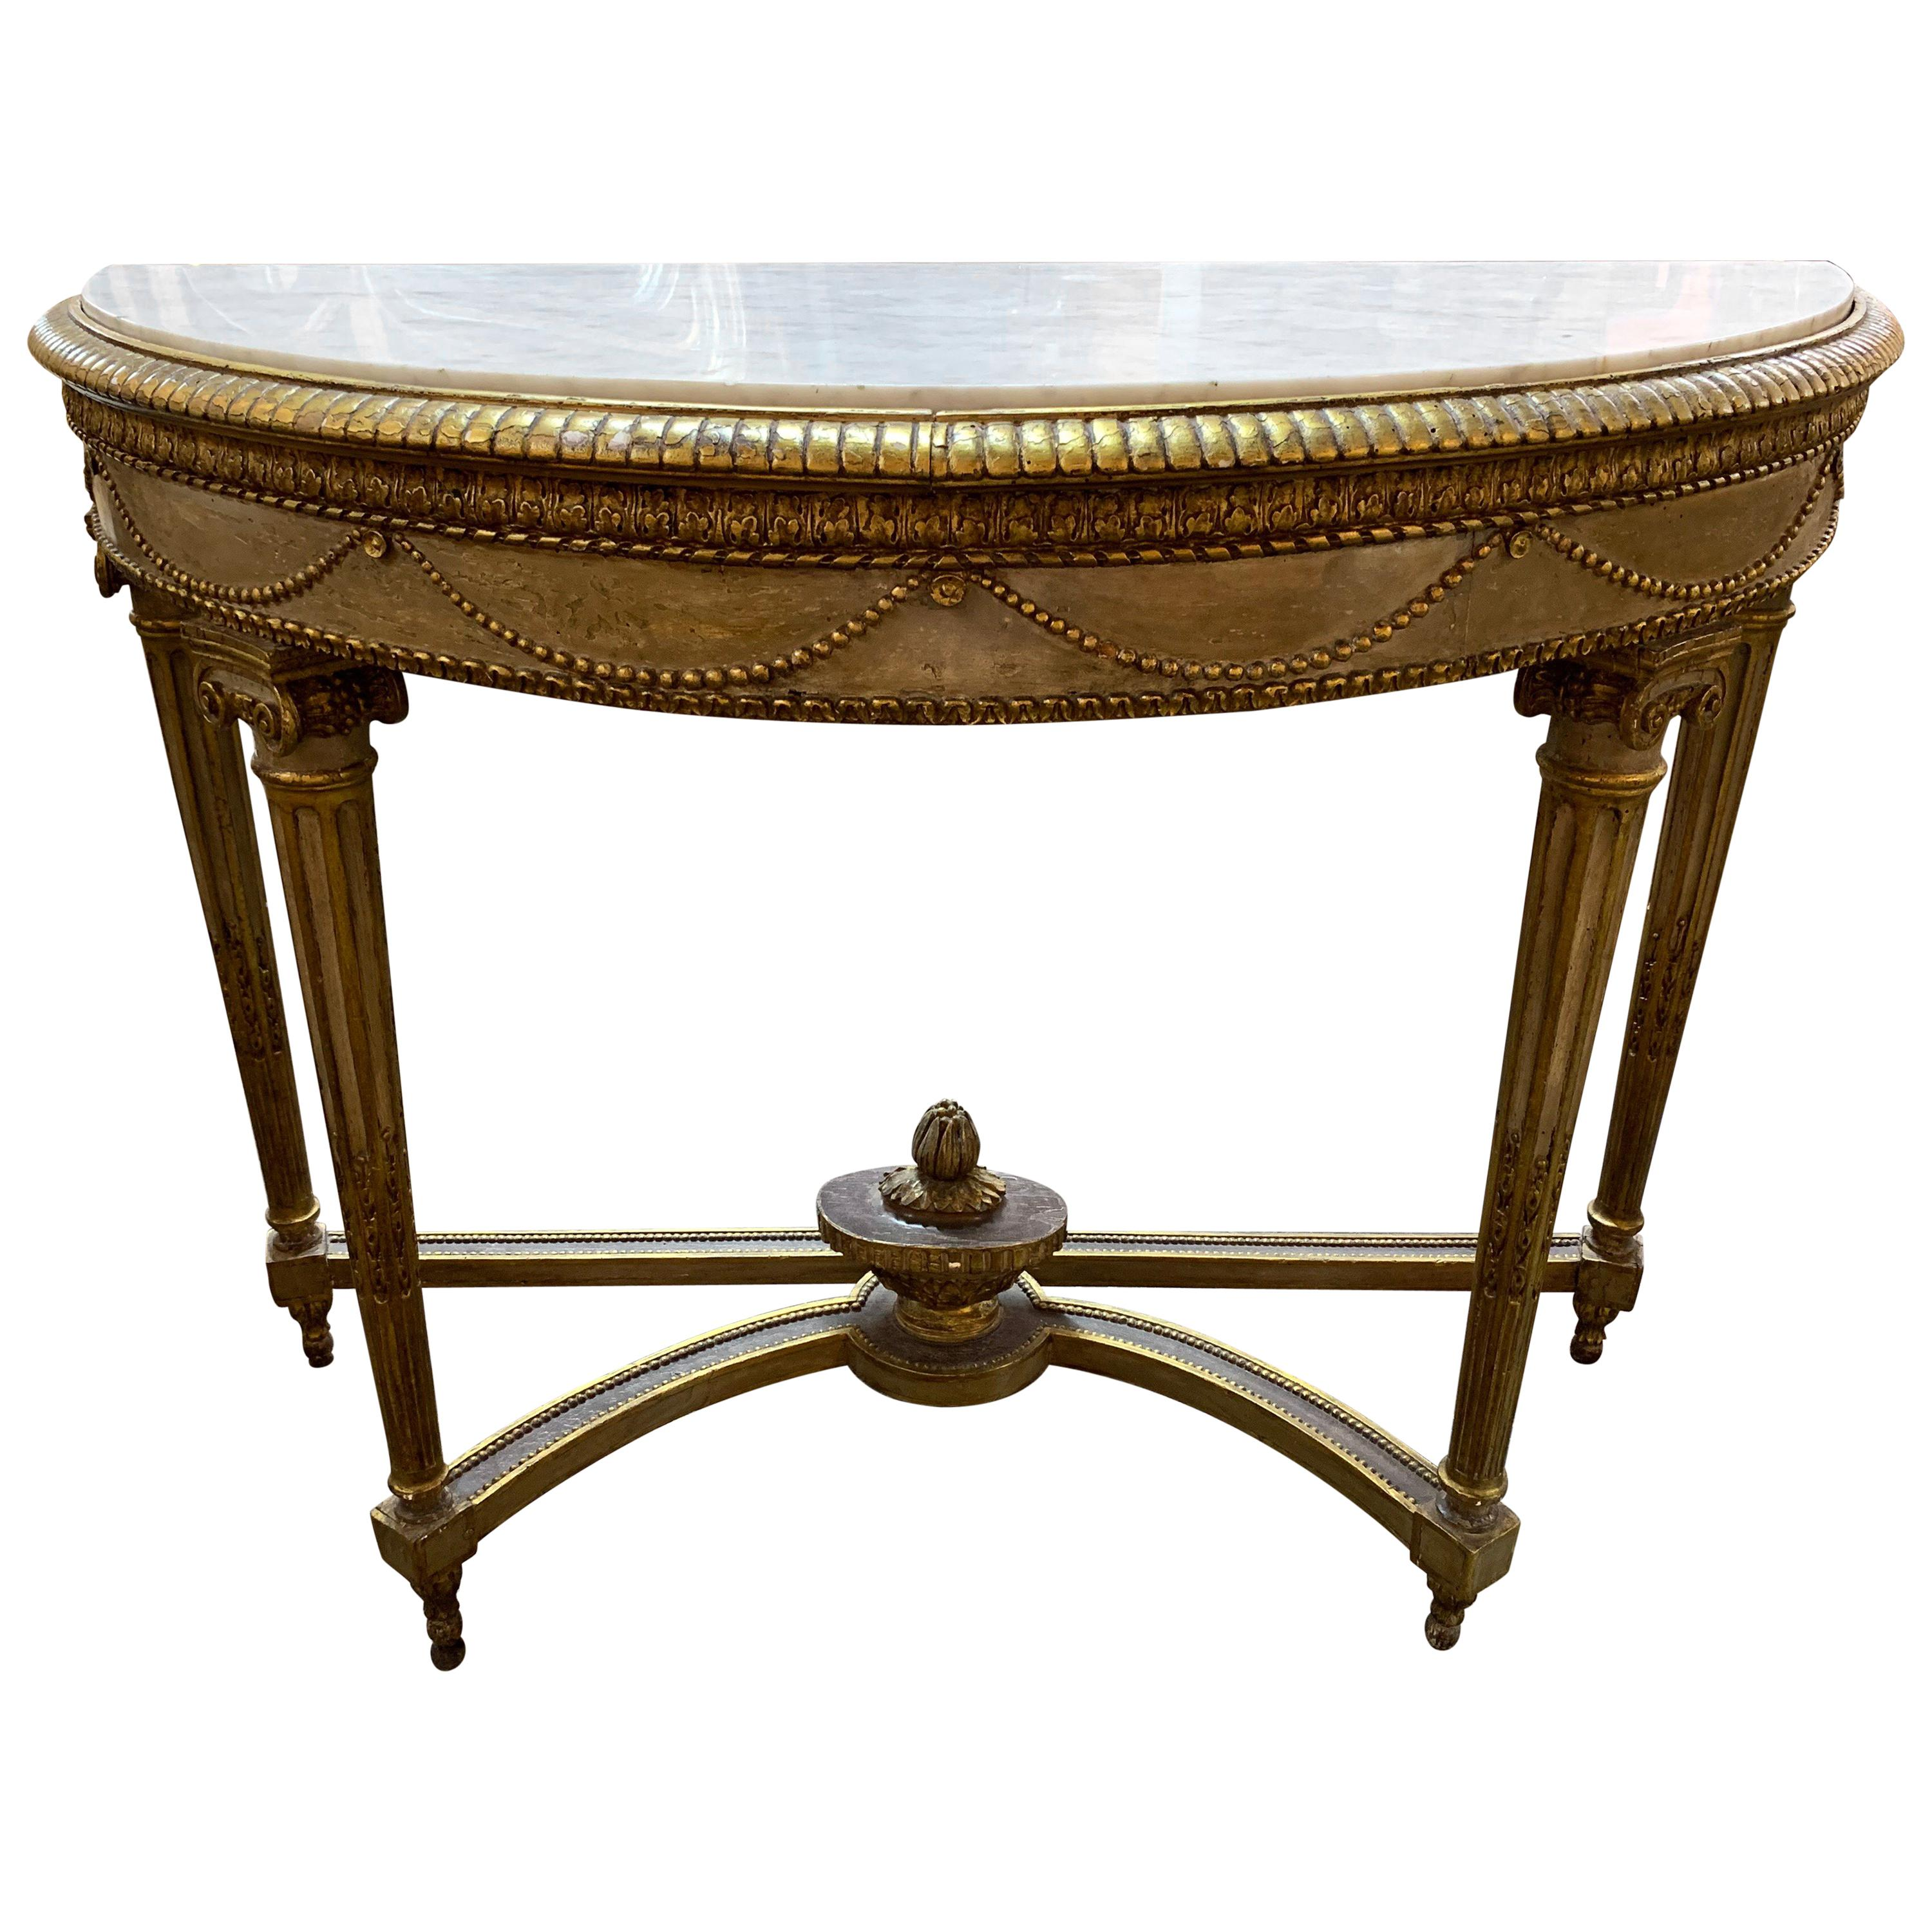 19th Century French Louis XVI Carved Parcel Gilt Console Table